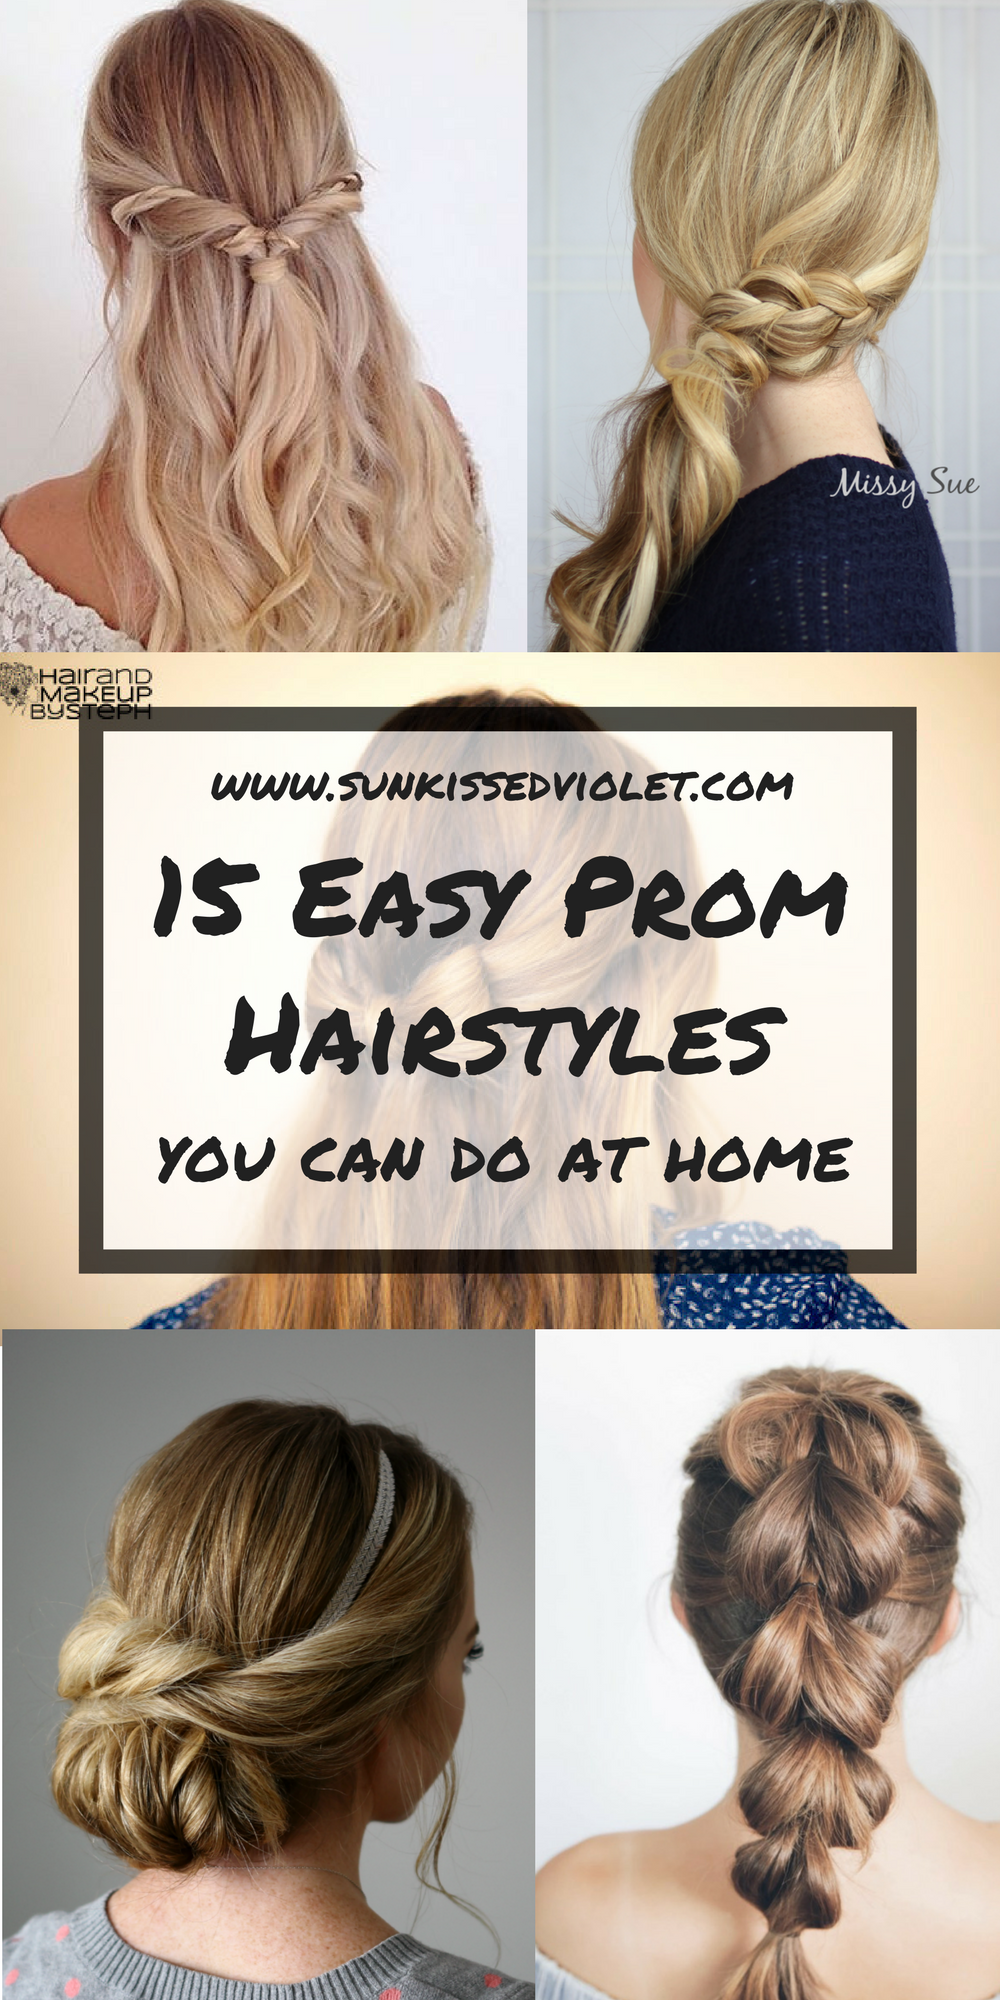 15 easy prom hairstyles for long hair you can diy at home 15 easy prom hairstyles for medium to long hair you can diy at home with step solutioingenieria